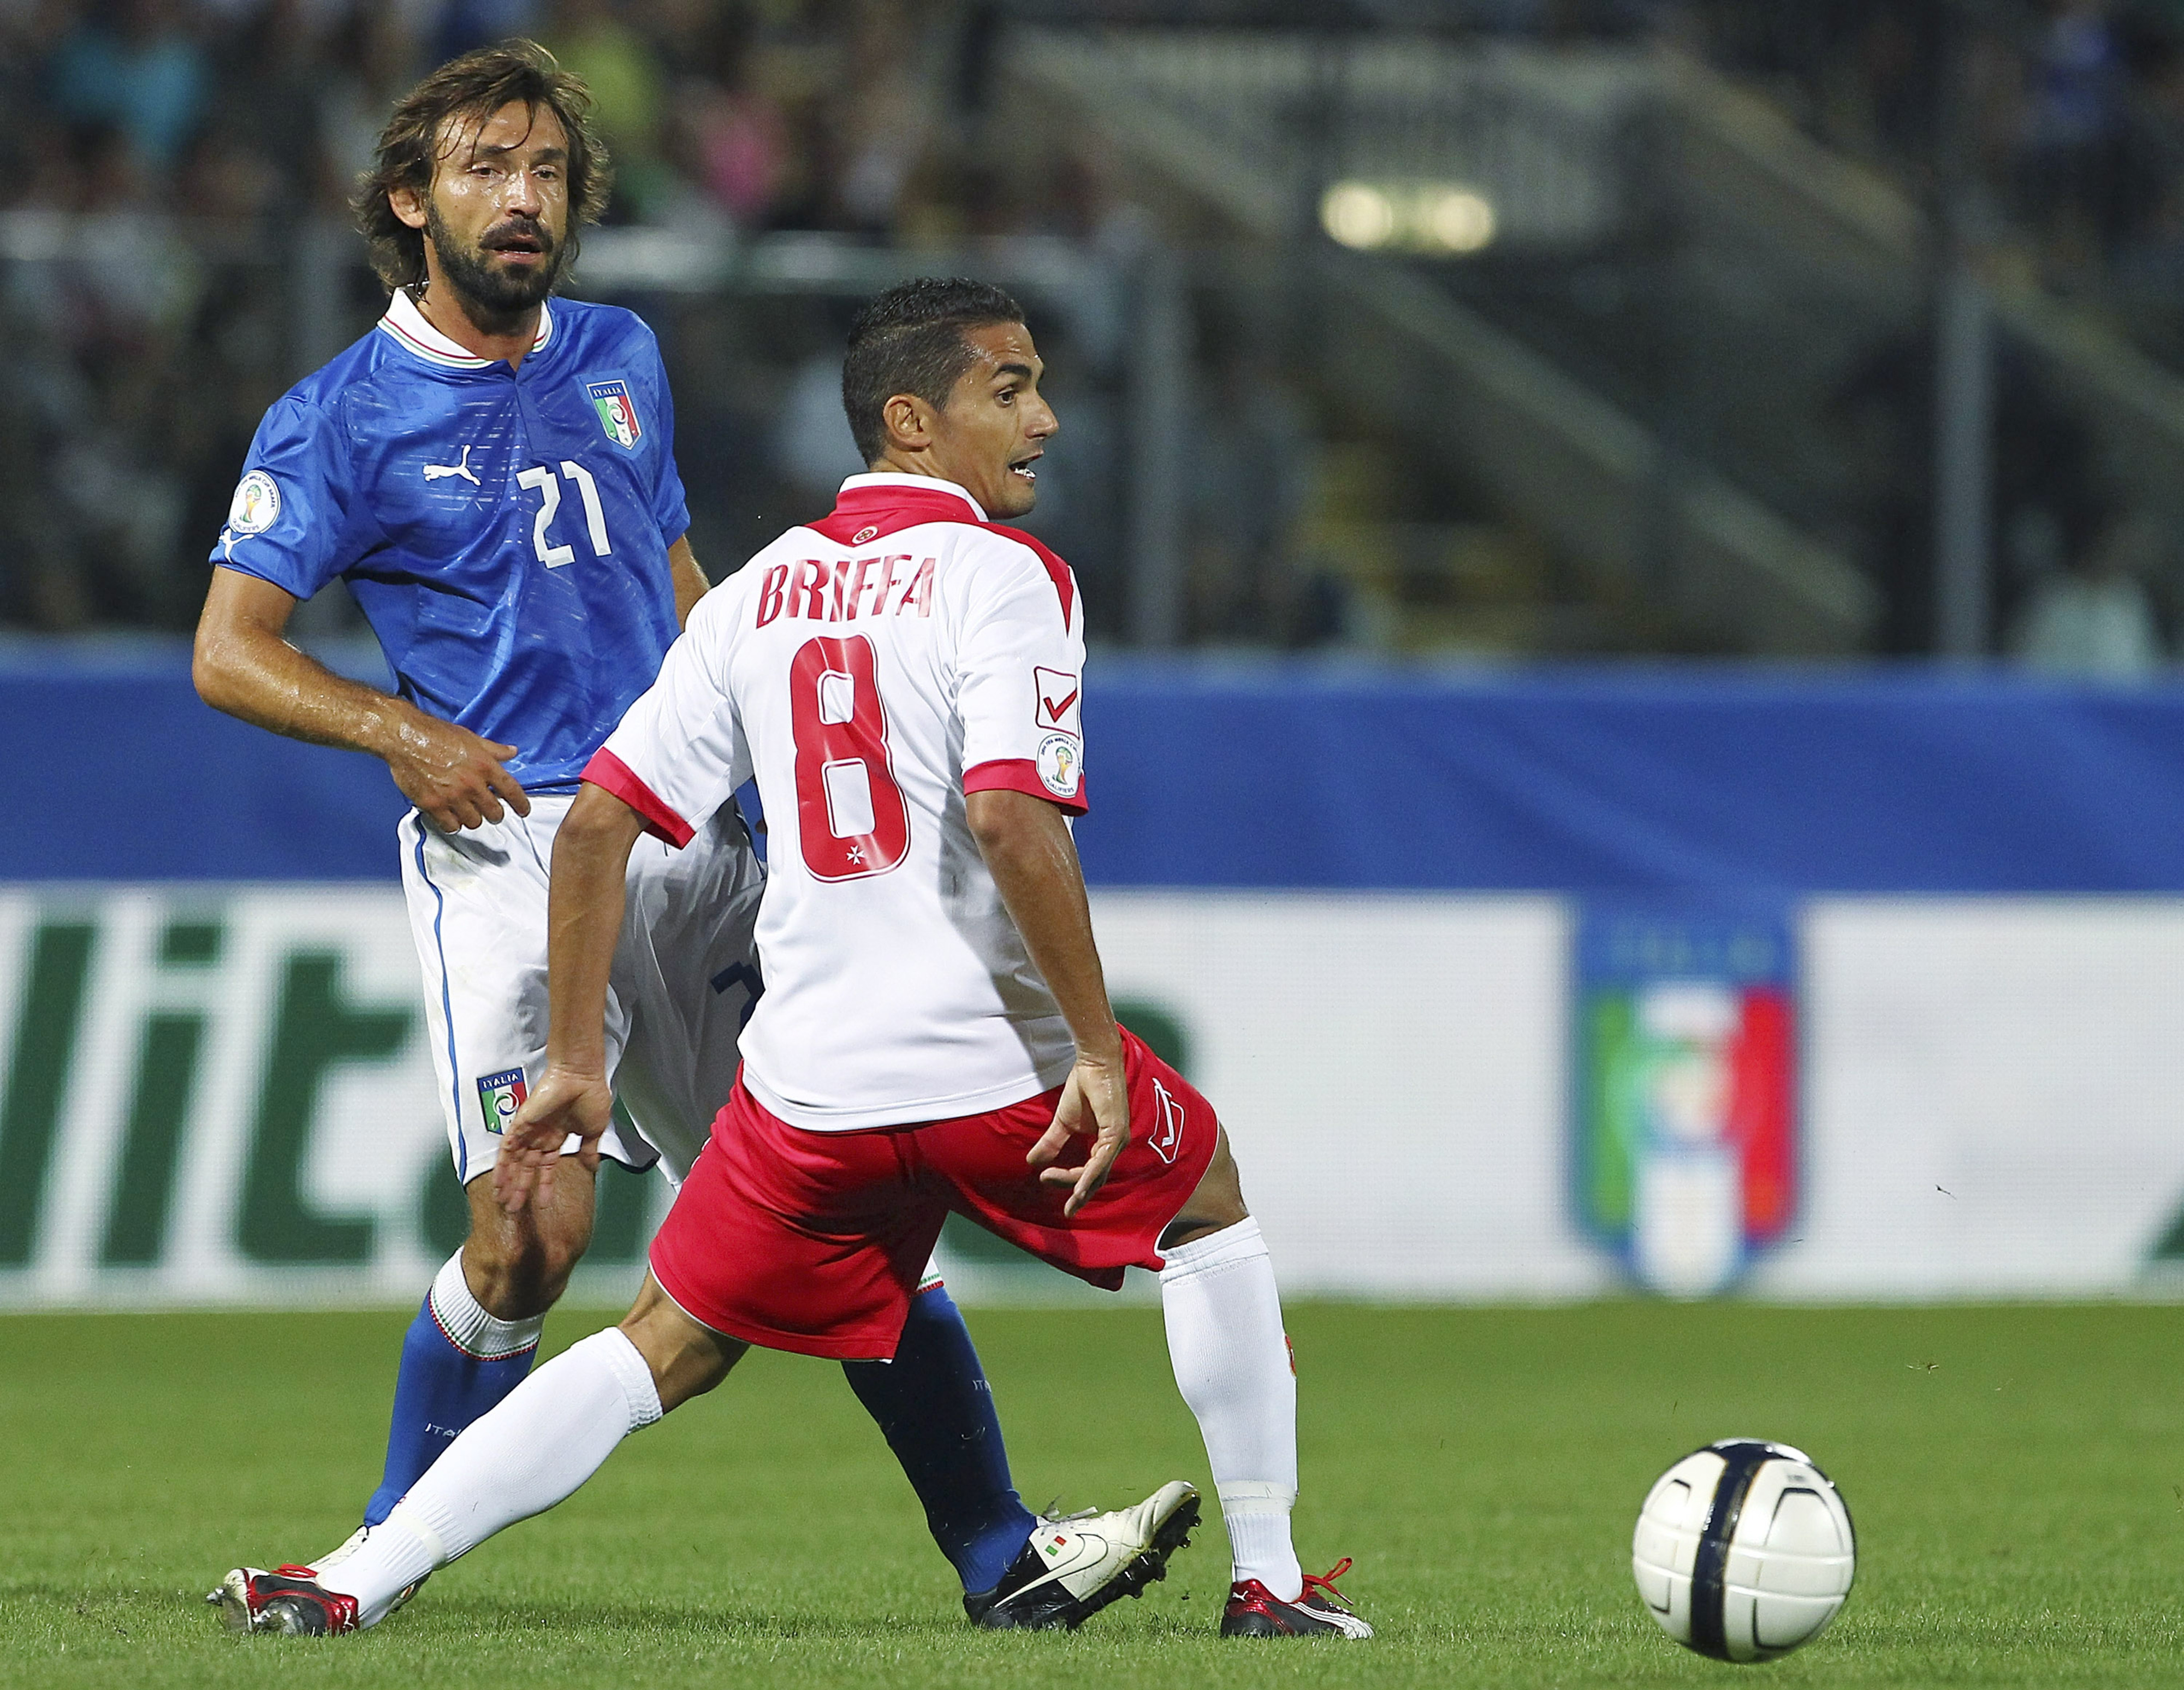 Valletta's Roderick Briffa playing for Malta against Andrea Pirlo and Italy in a World Cup qualifer.